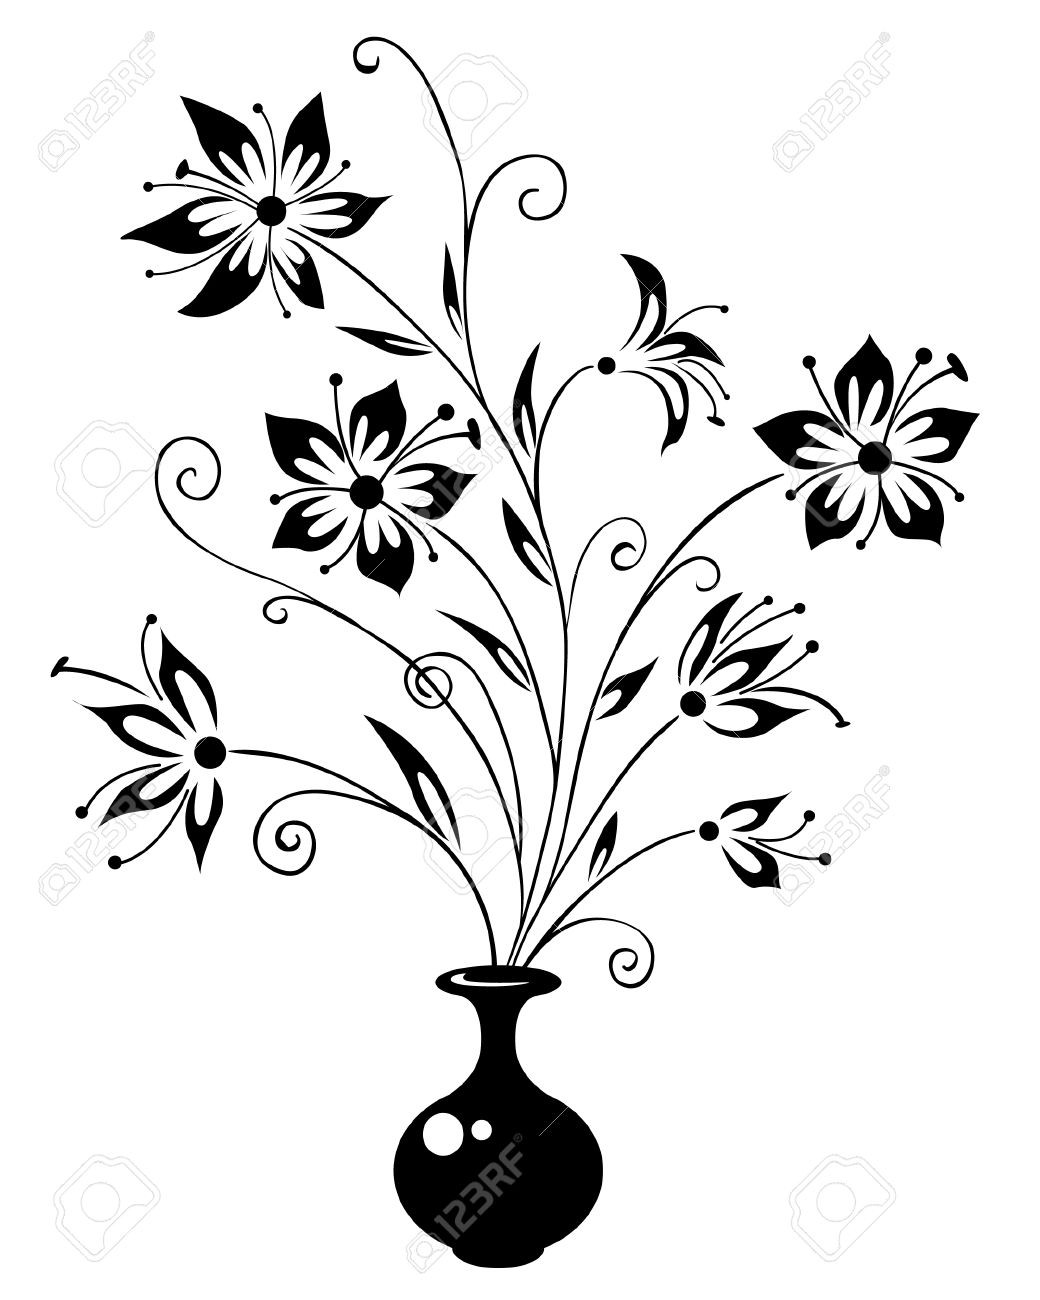 Picture Of Flowers Drawing At Getdrawings Free For Personal